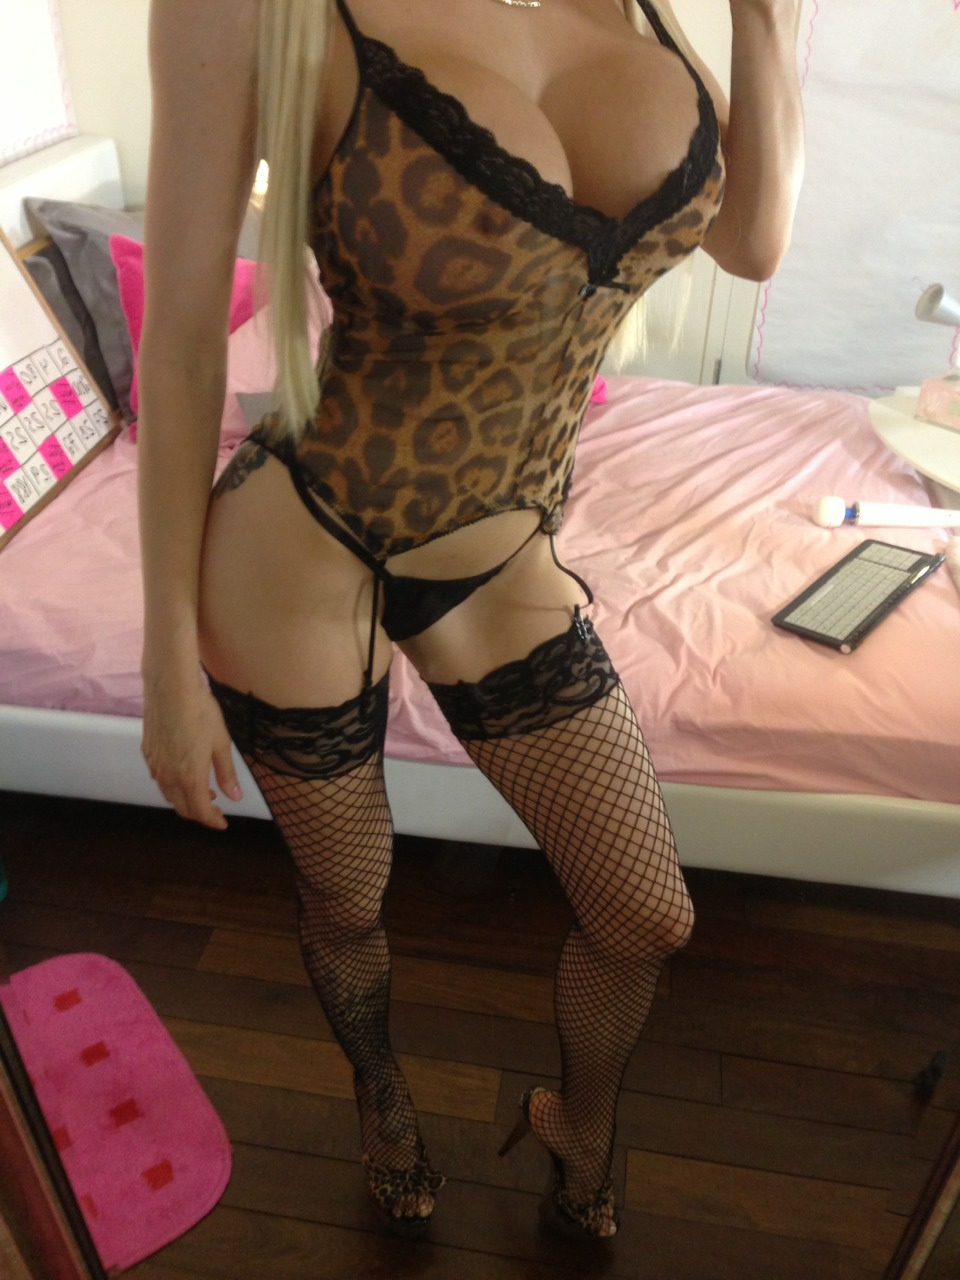 showing images for czech public money xxx Angelwicky, Bigboobs, Bignaturals, Bigtits, Blonde, Hairypussy, Lingerie, S2K15Best, Slut, Stockings, Threesome